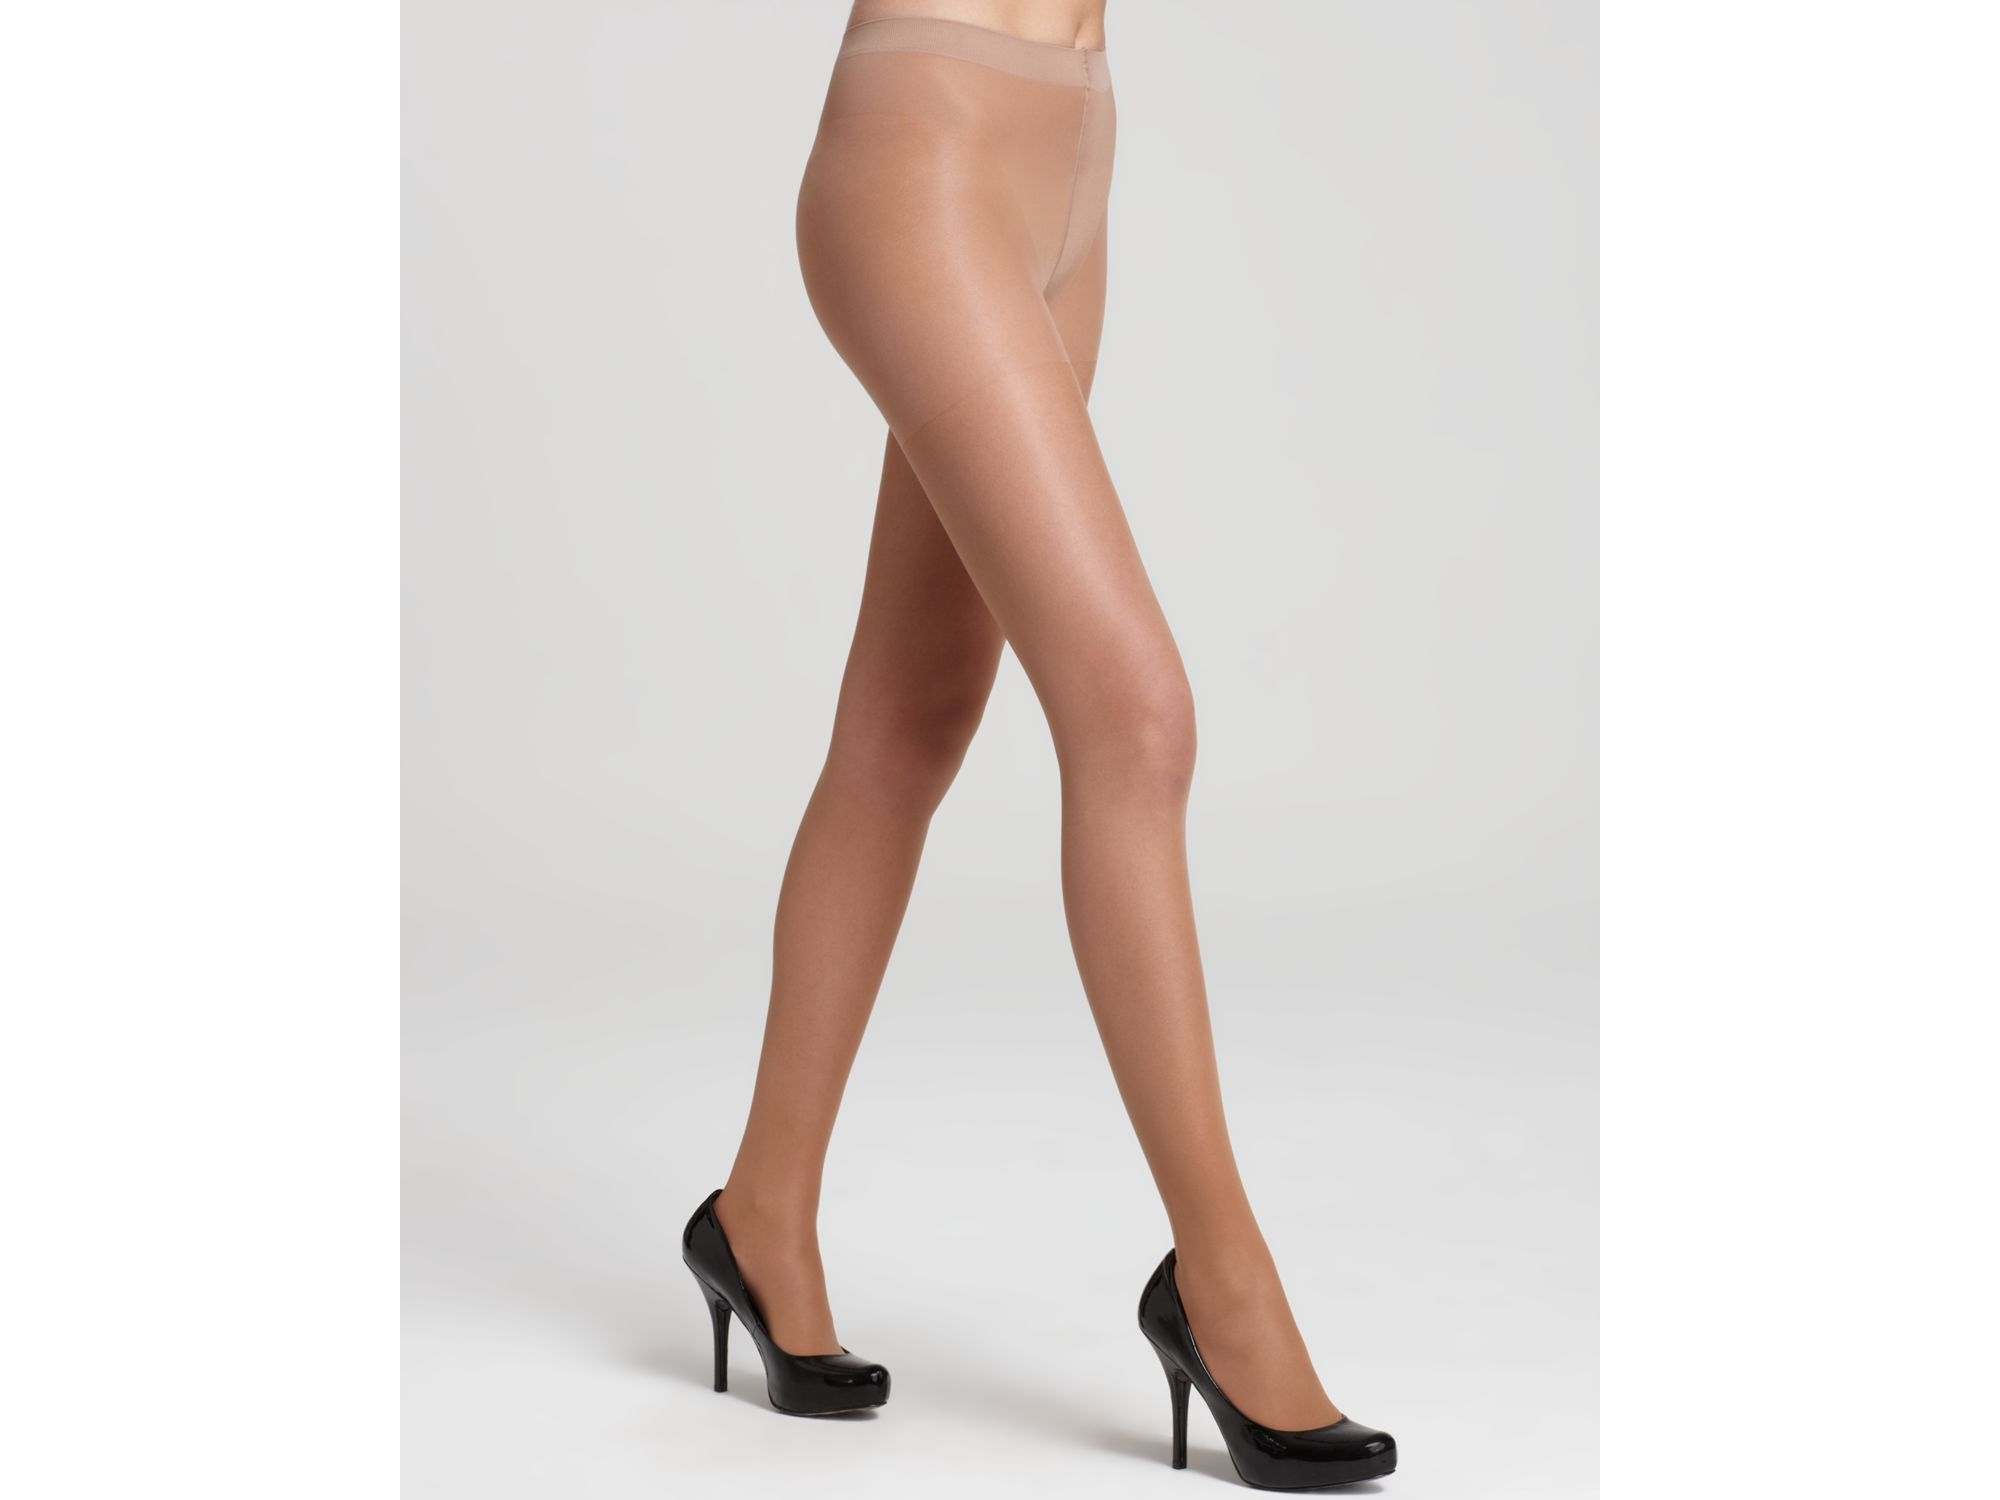 6602c72233a18a Falke Shaping Support 20 Tights in Natural - Lyst